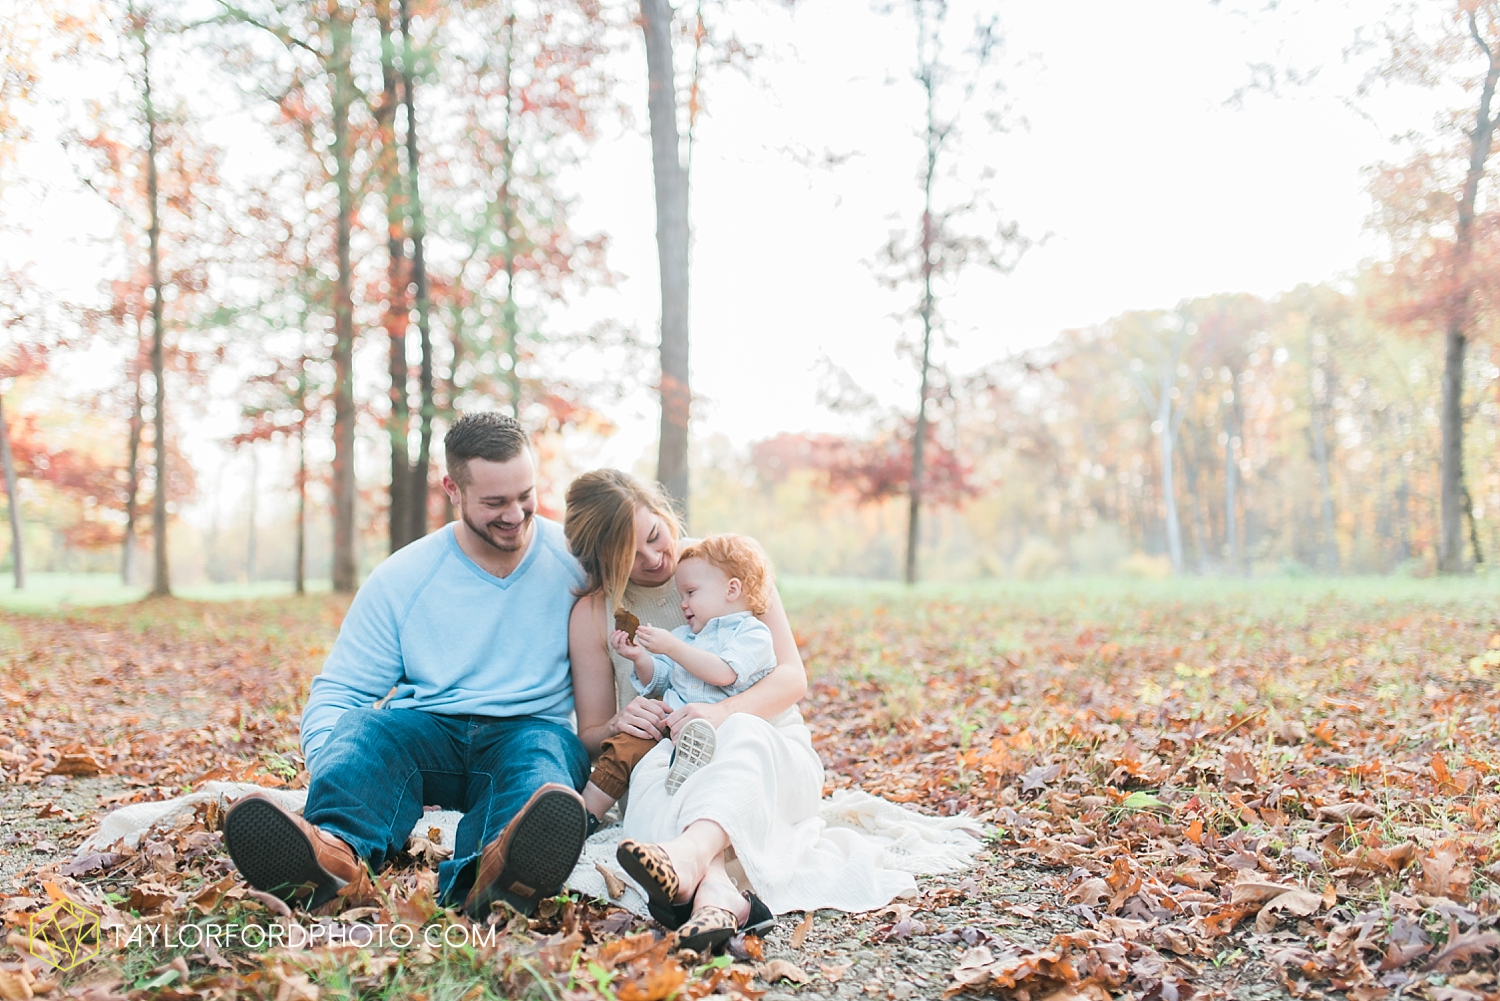 huntertown_indiana_family_photographer_taylor_ford_3615.jpg